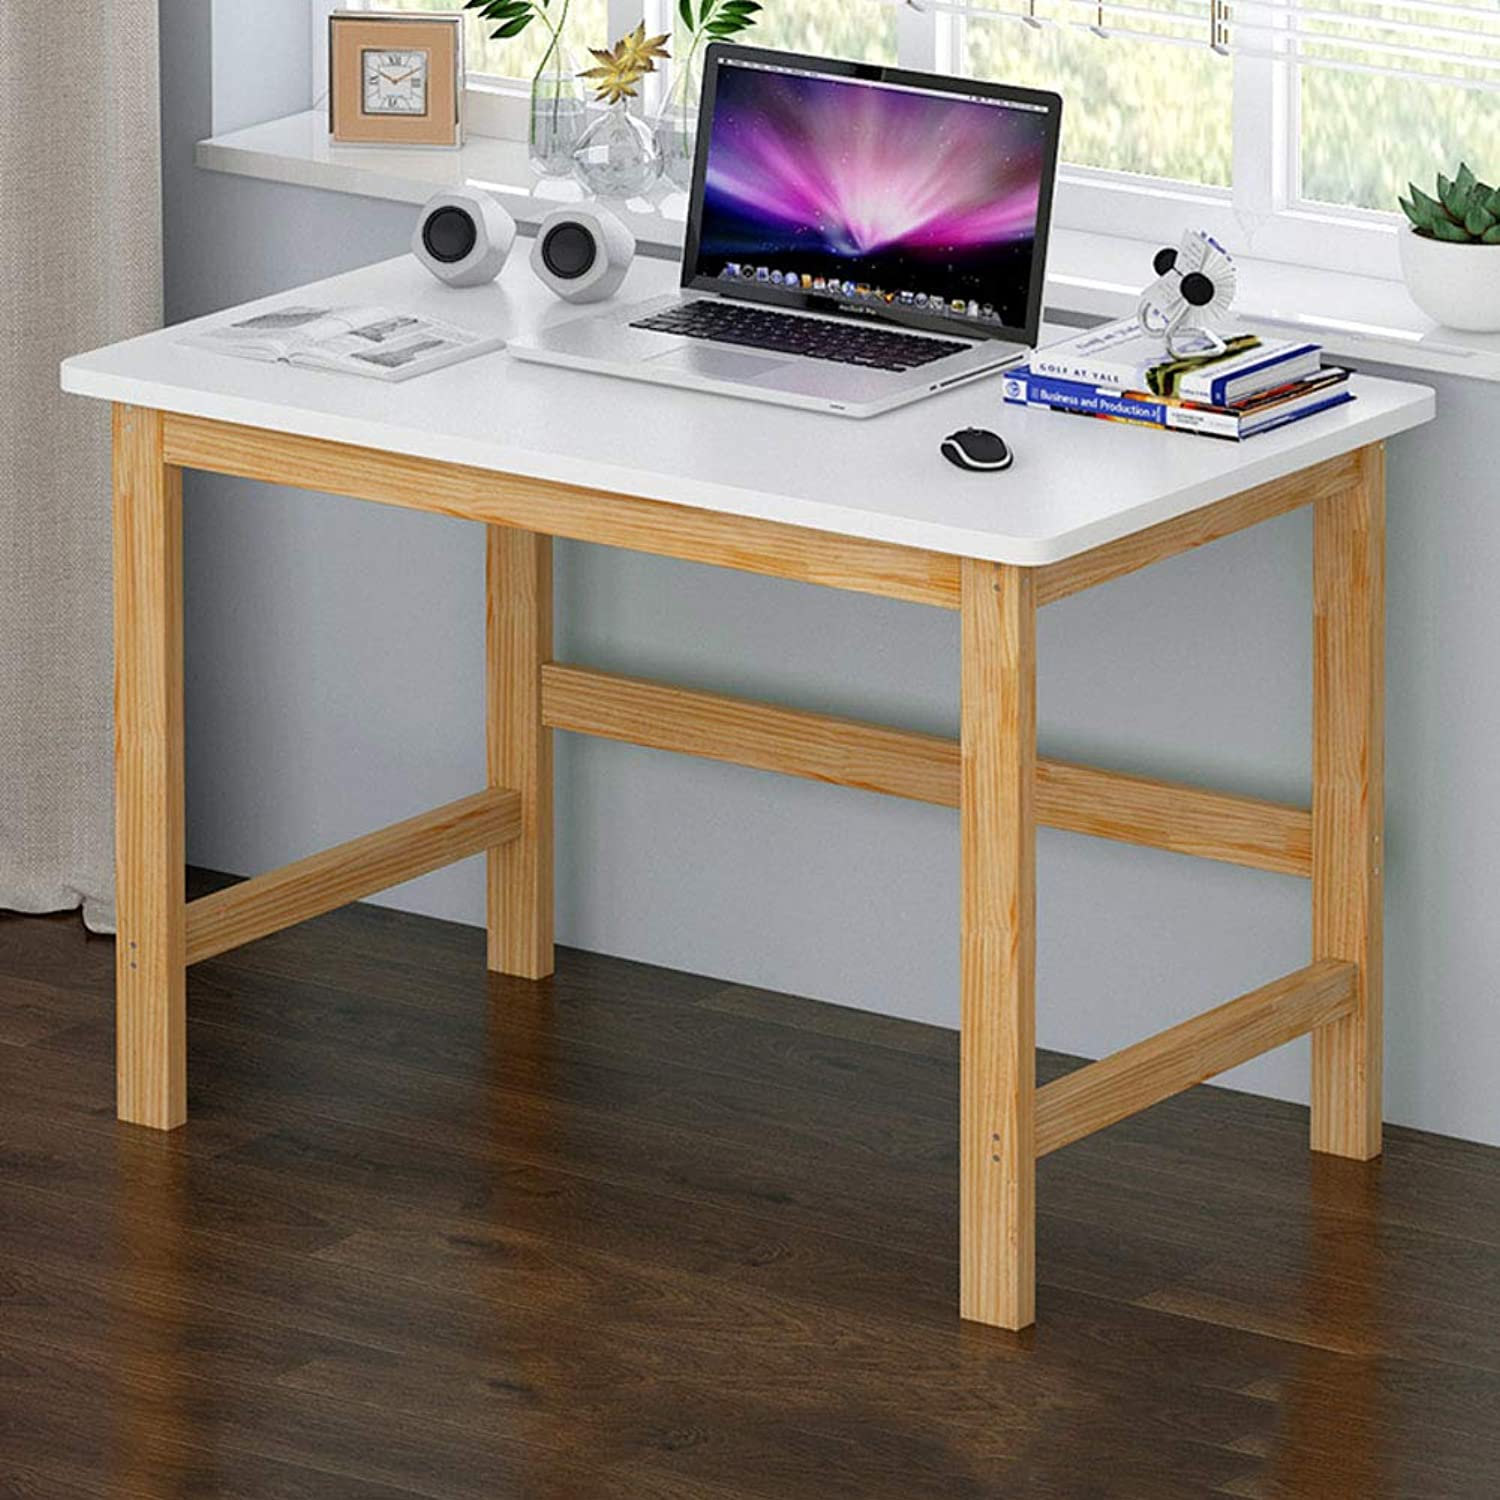 Computer Desk Storage Shelves,Simple Sturdy Office Computer Table,pc Laptop Wood Frame Workstation Easy to Assembly-b 100x60x74cm(39x24x29inch)